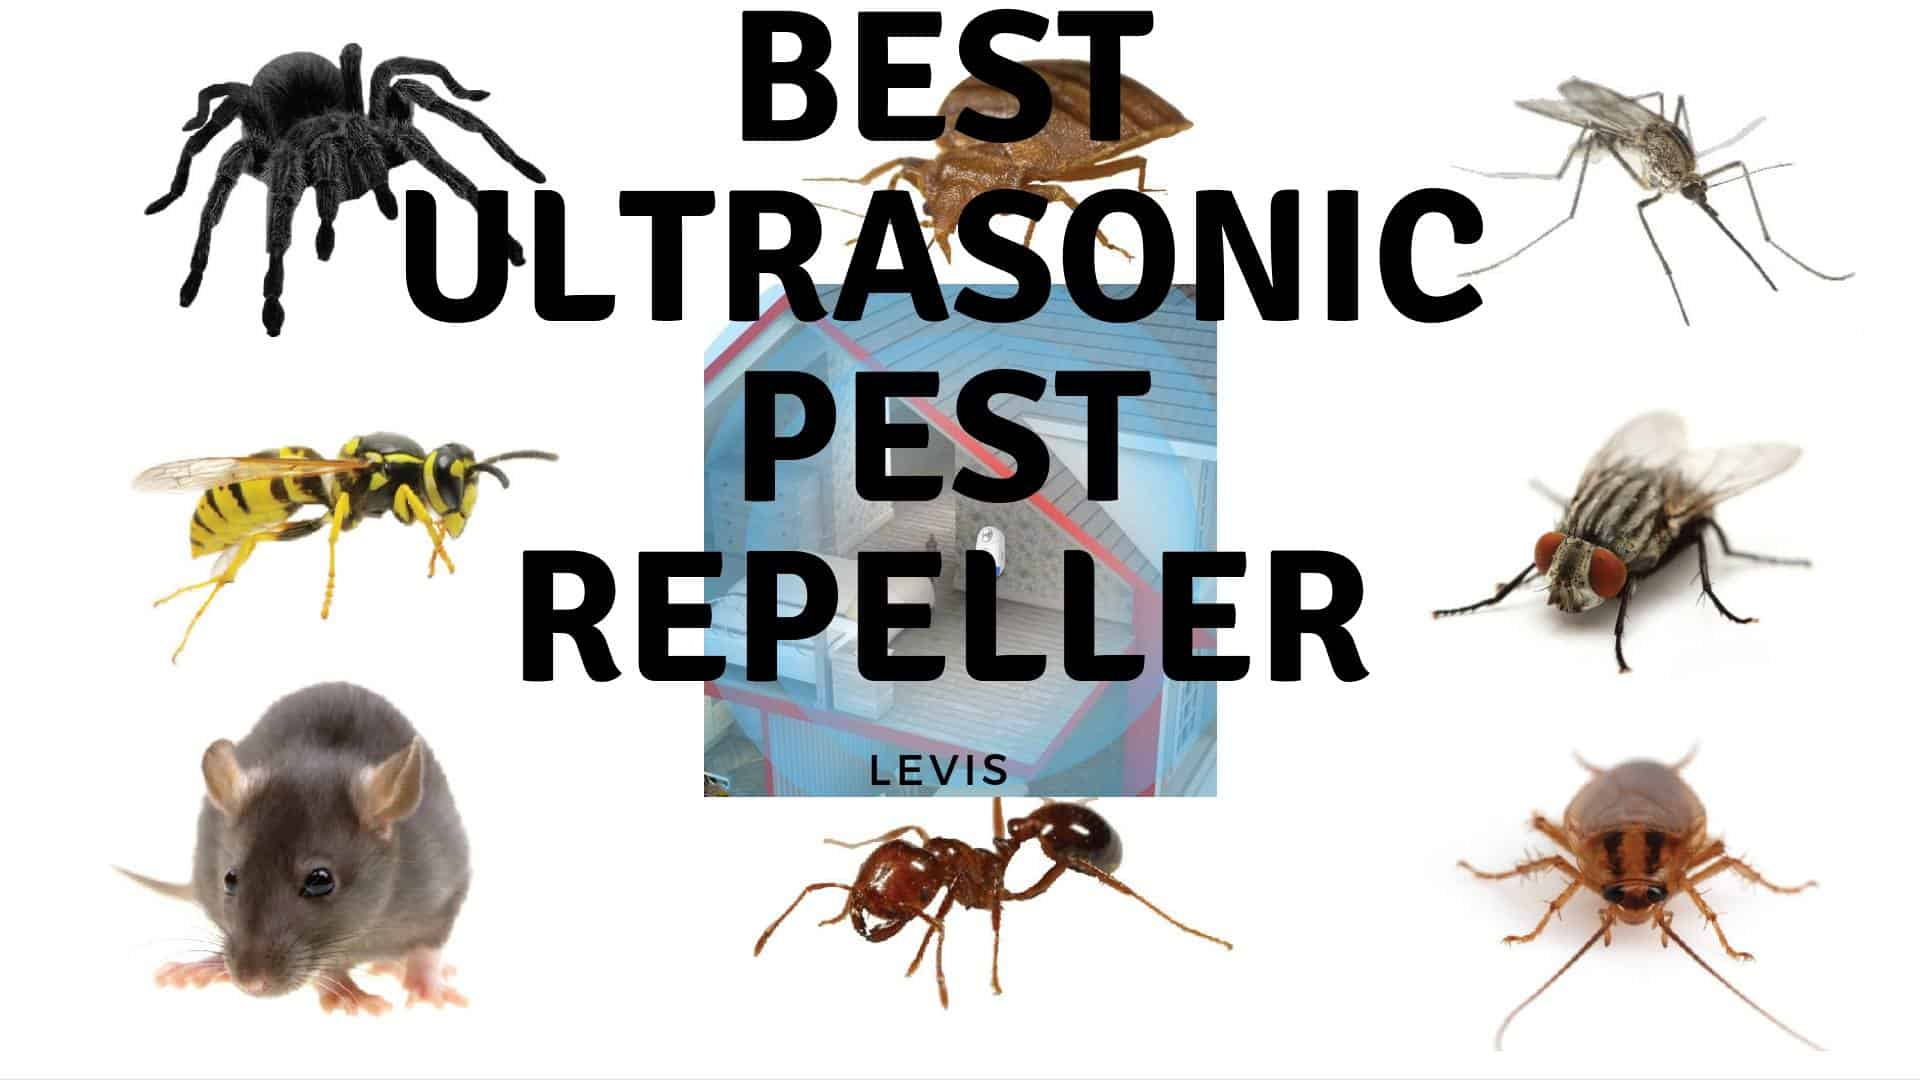 Best Ultrasonic Pest Repeller